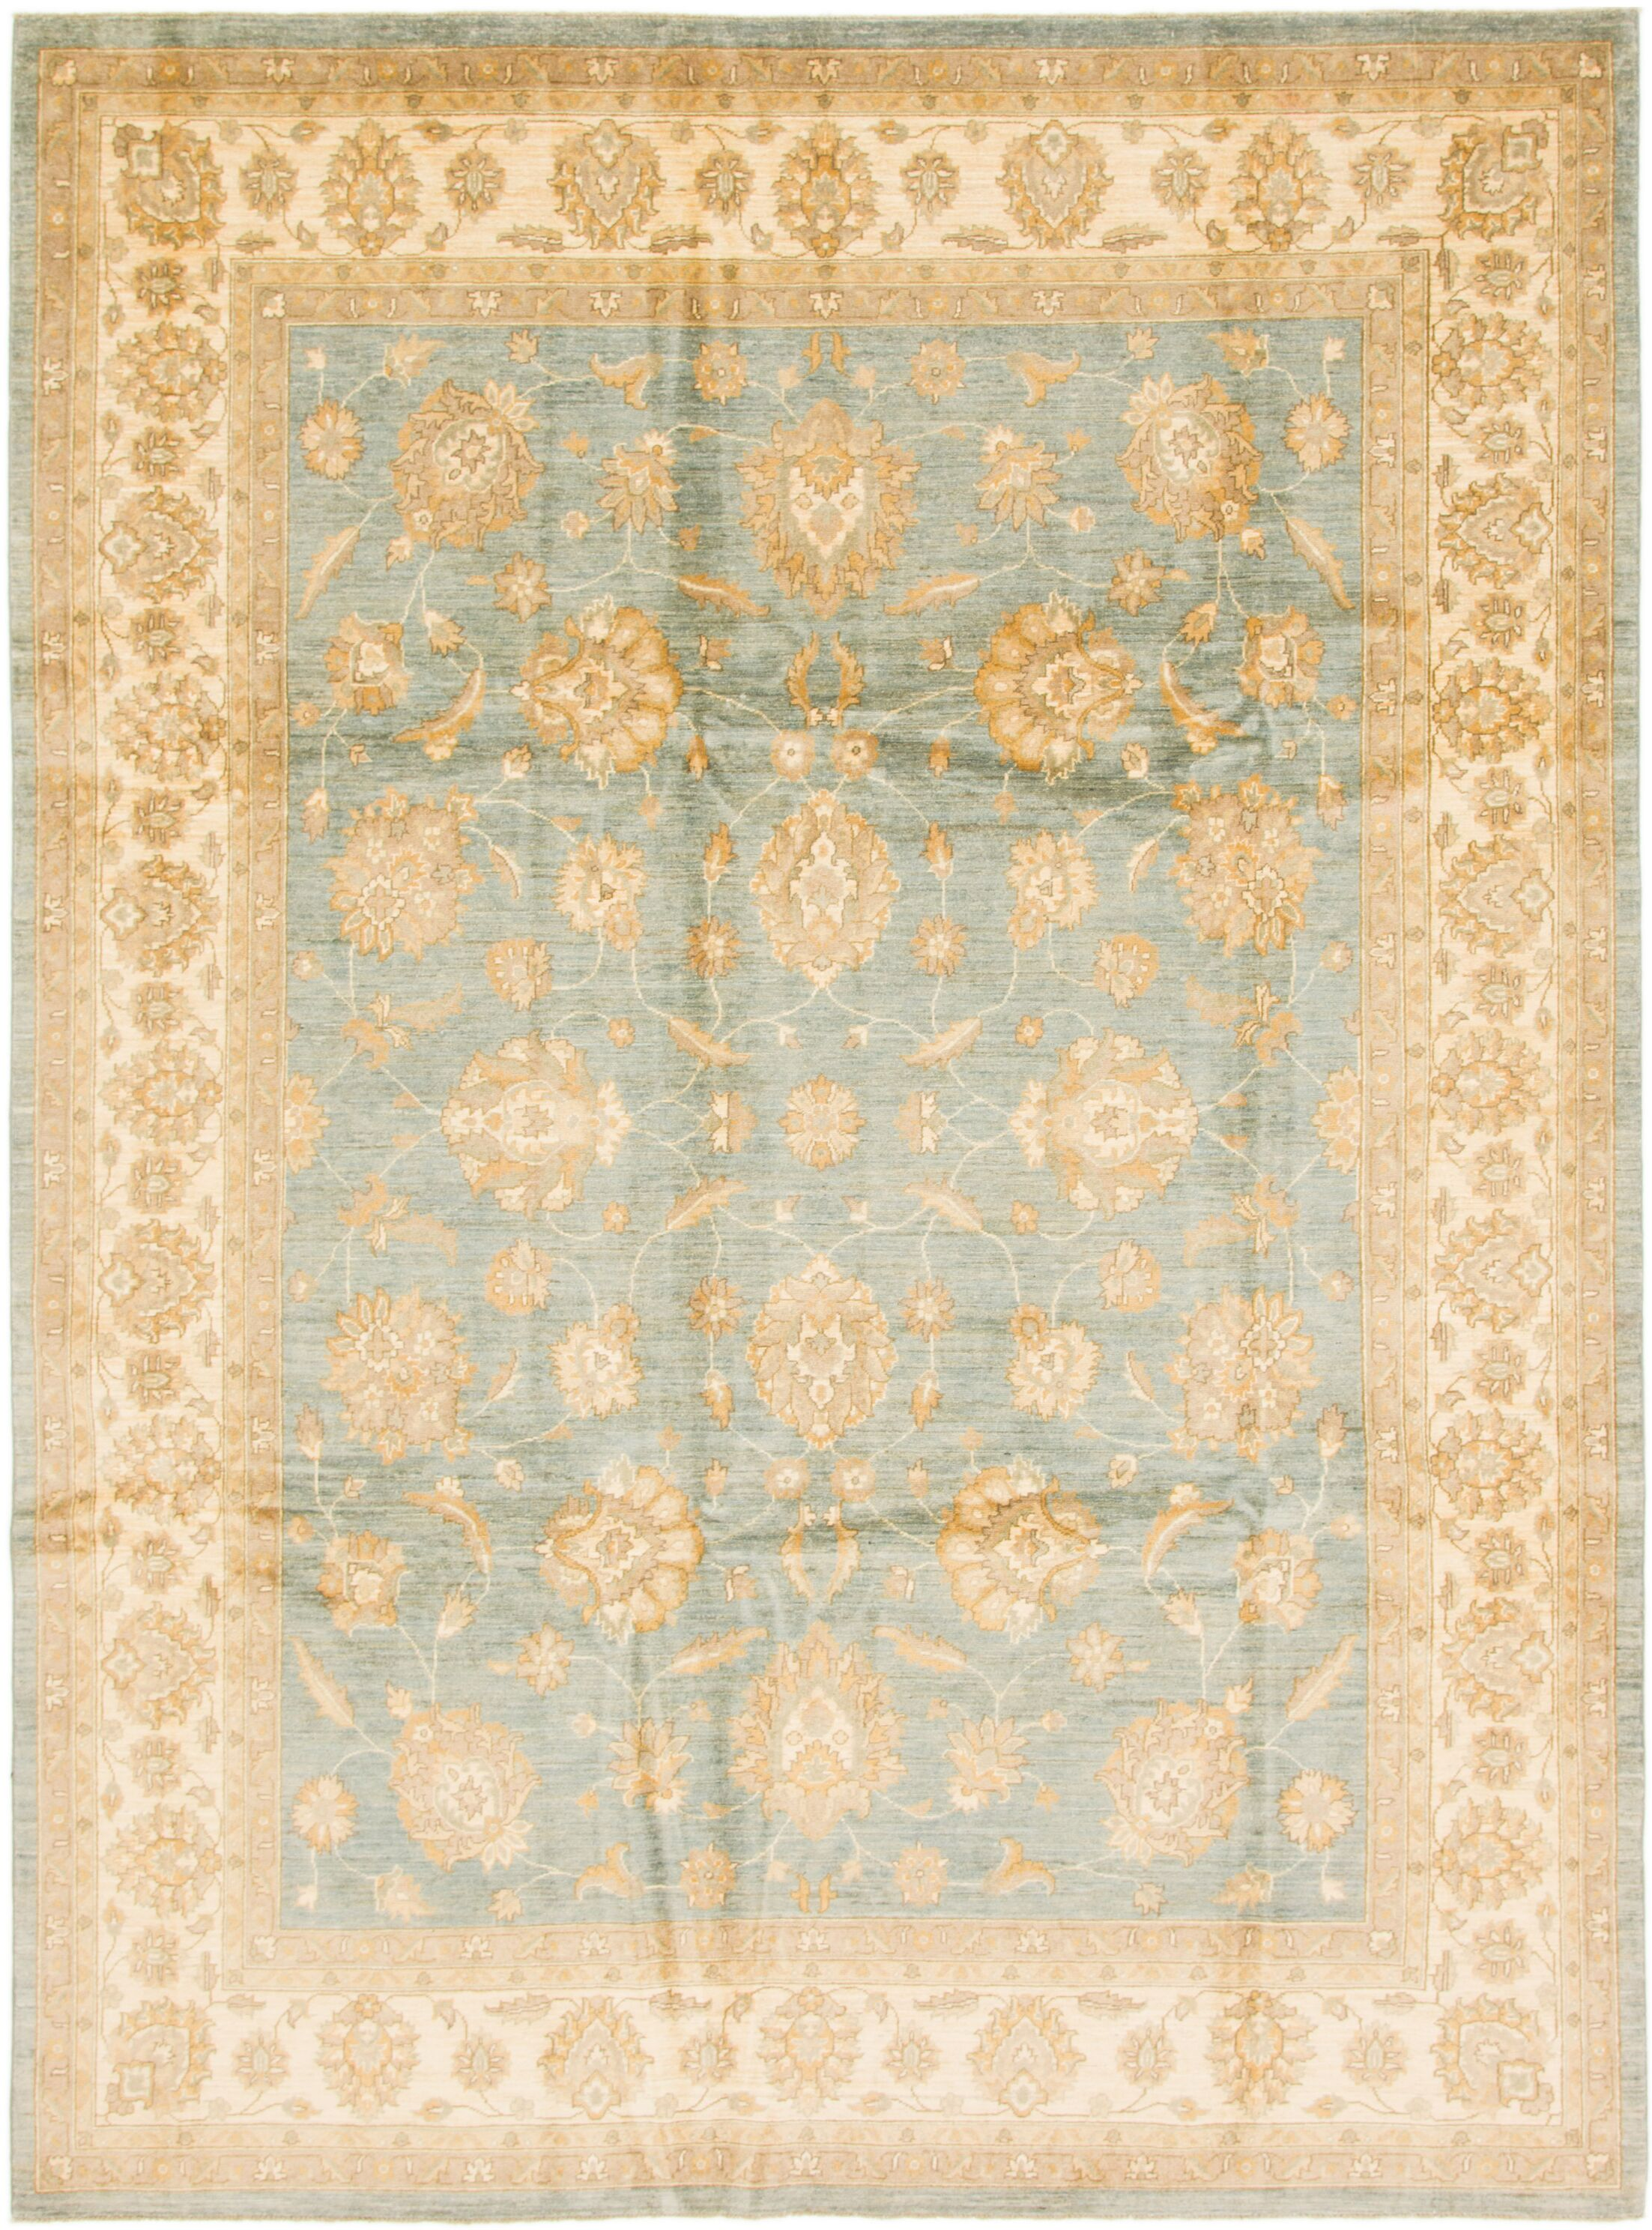 One-of-a-Kind Huntingdon Hand-Knotted Wool Beige/Blue/Brown Area Rug